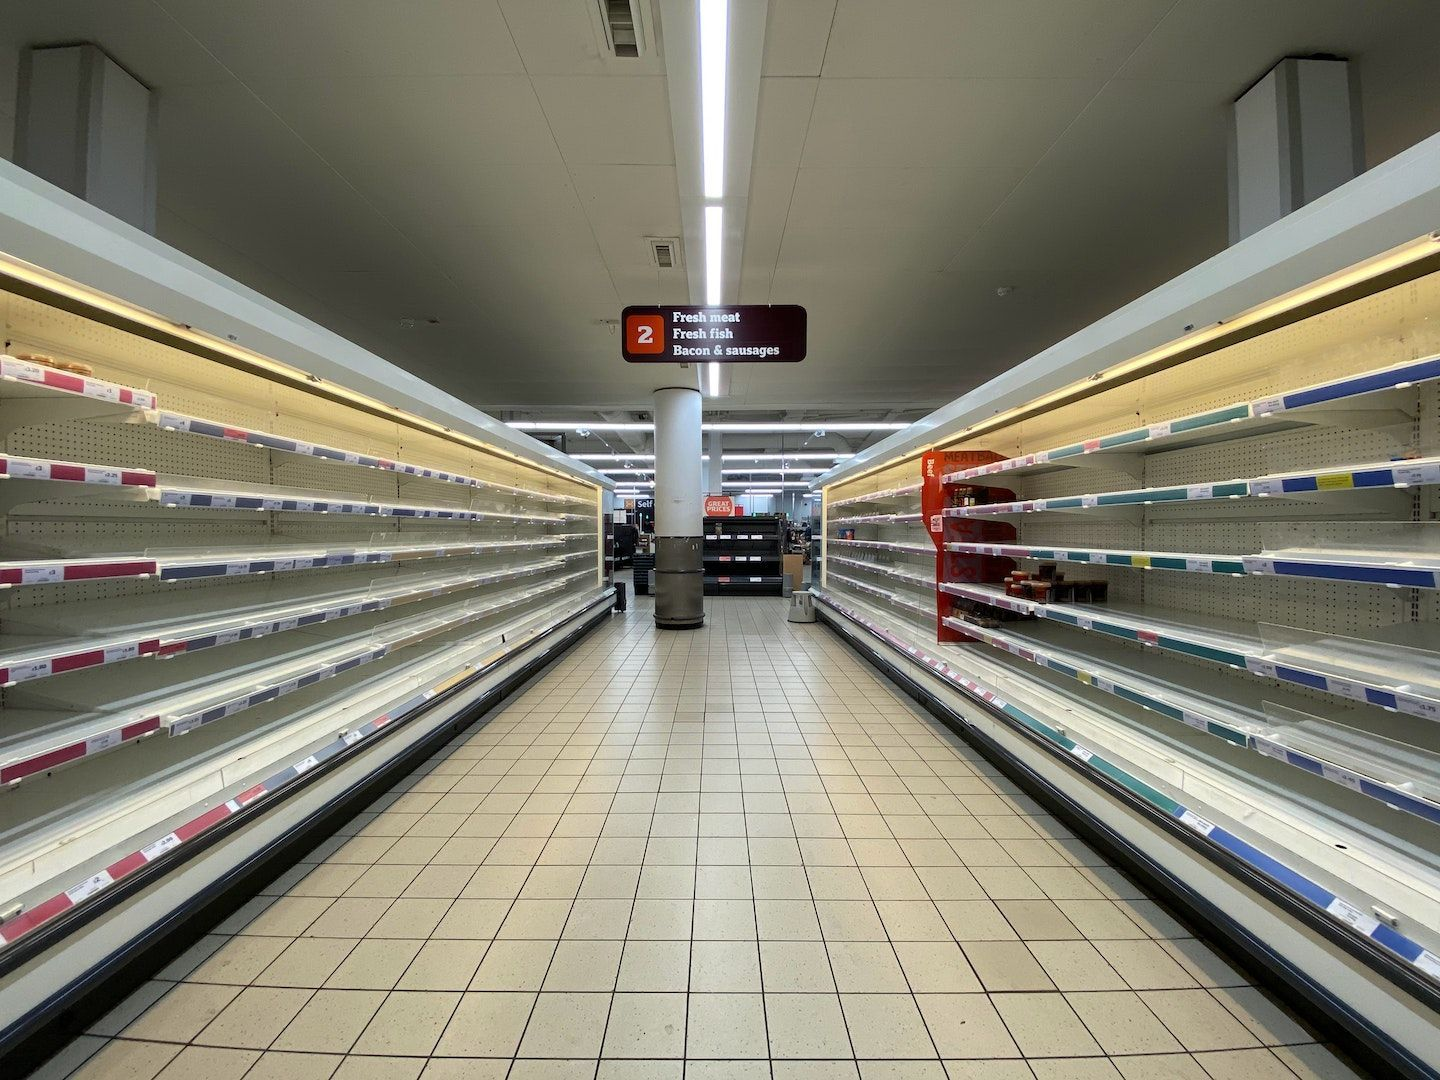 The COVID-19 pandemic left the supermarkets with empty meat shelves